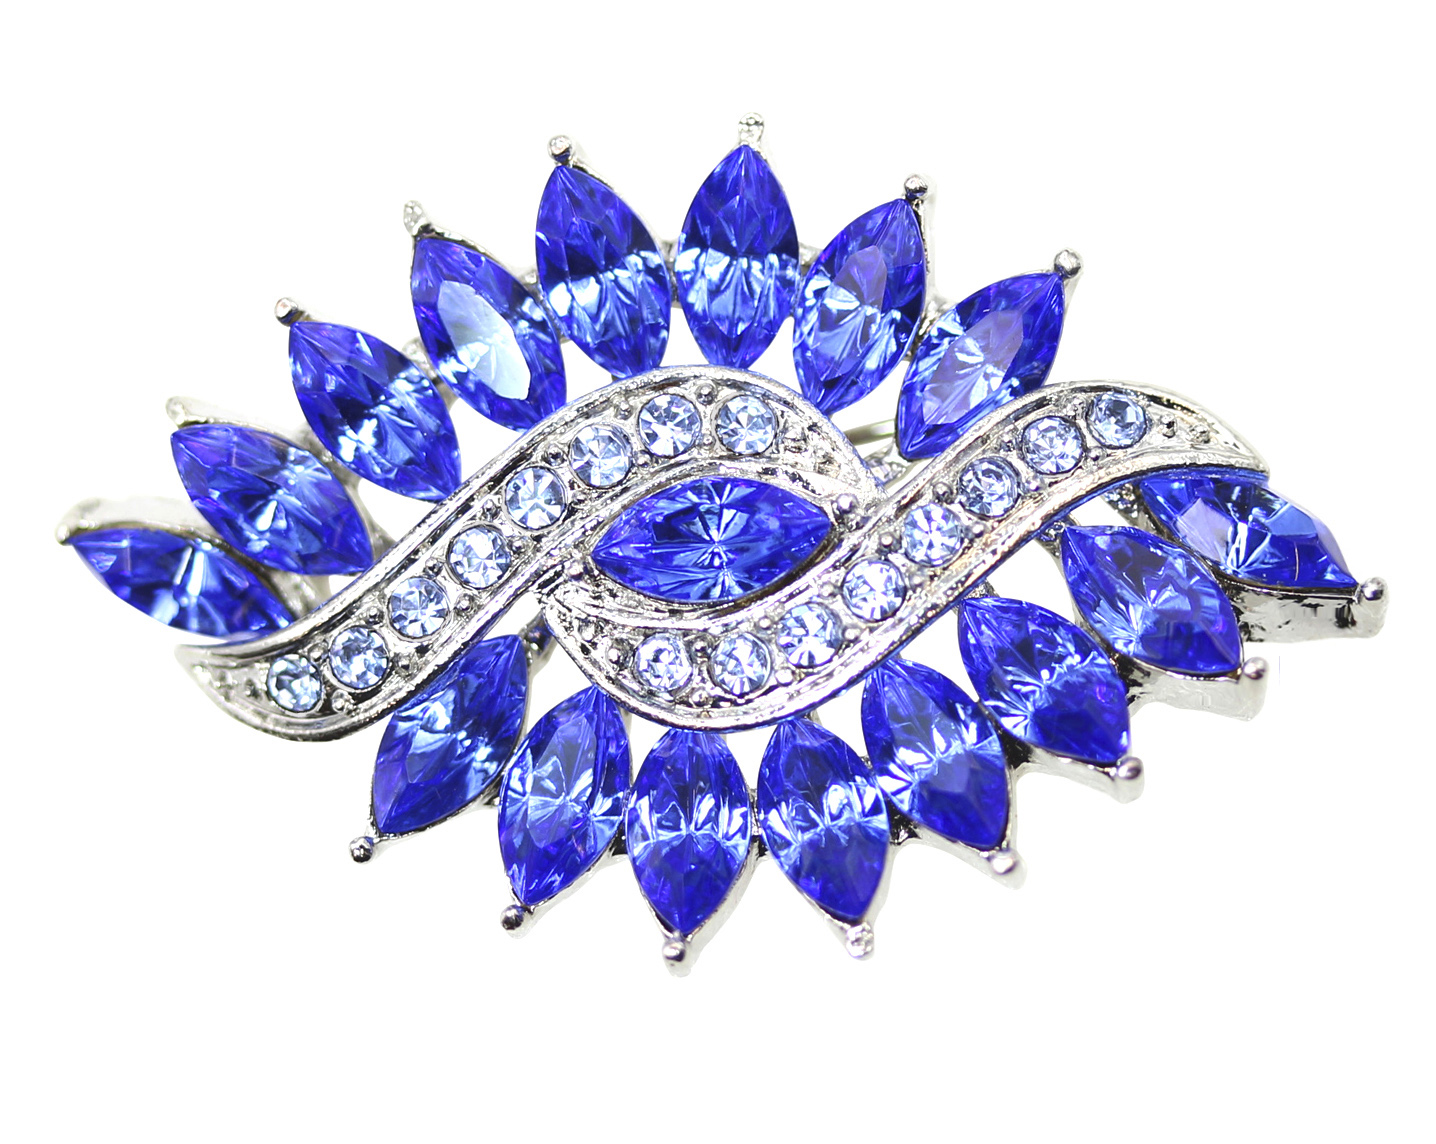 Faship Olive Shape Oval Blue Rhinestone Crystal Pin Brooch by